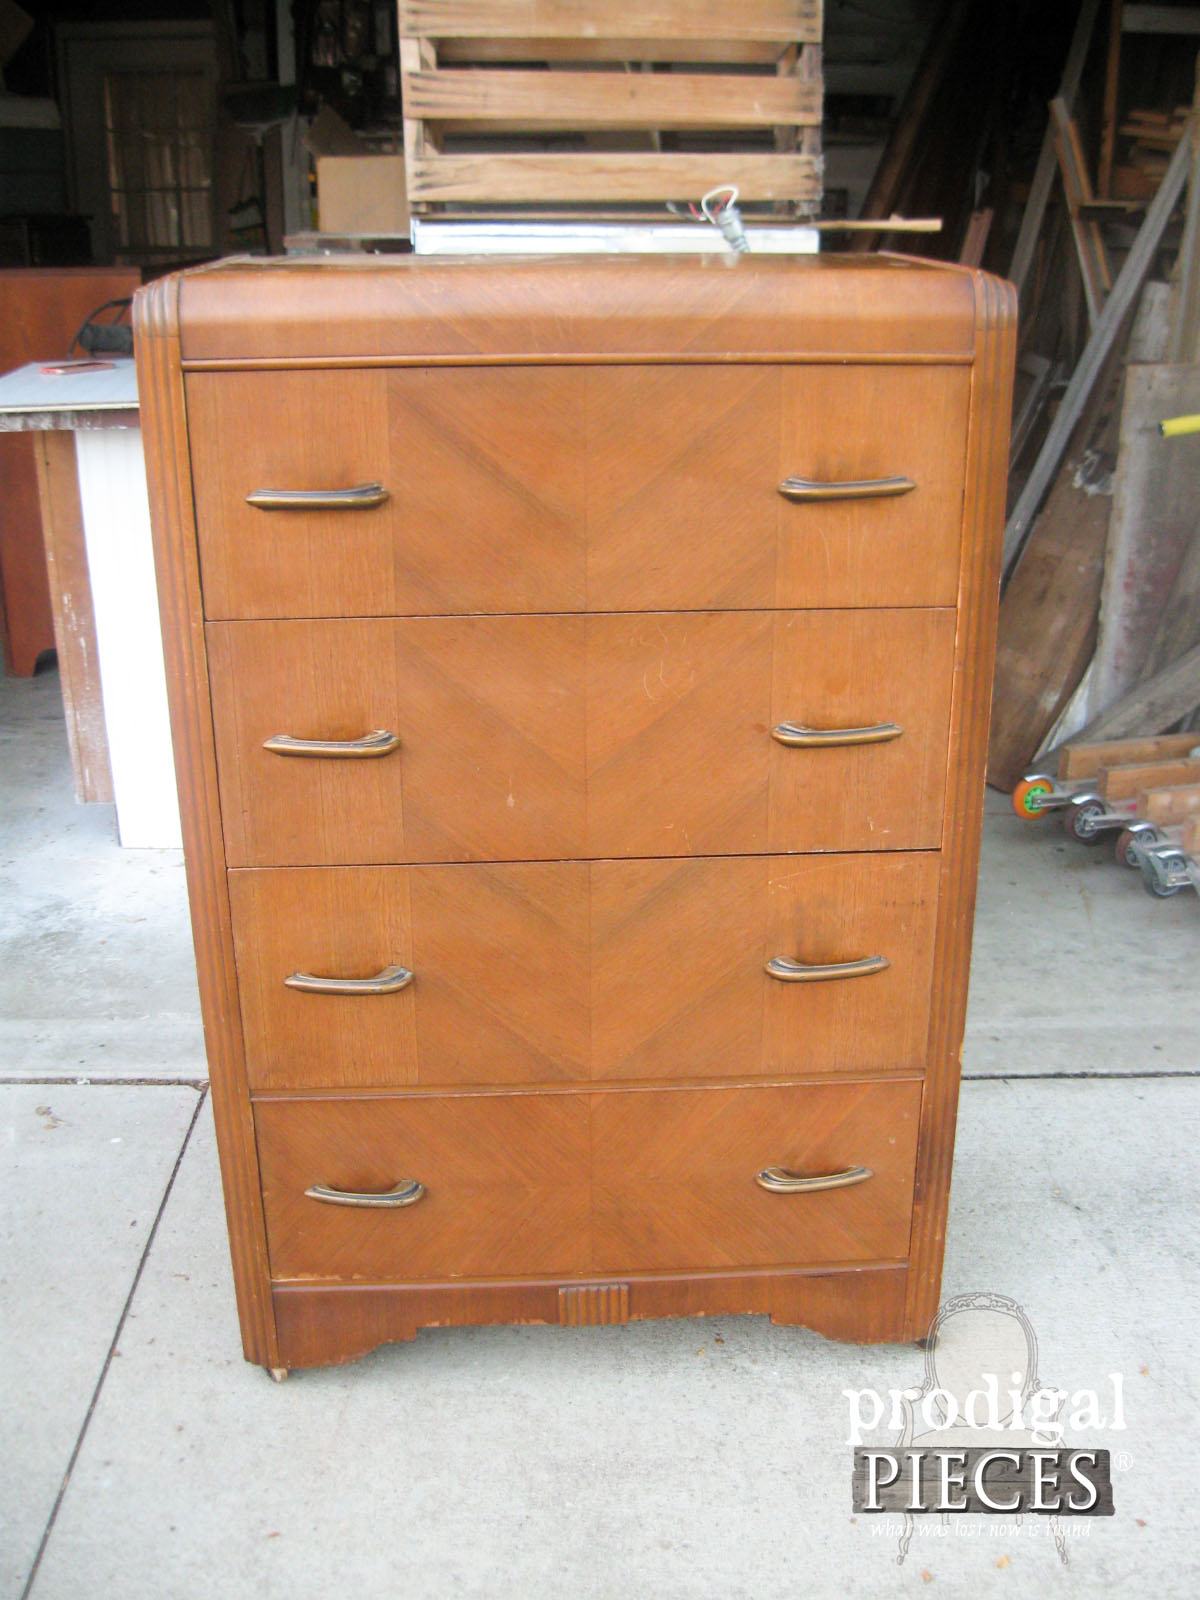 Art Deco Chest of Drawers Before Shabby Chic Details | Prodigal Pieces | www.prodigalpieces.com